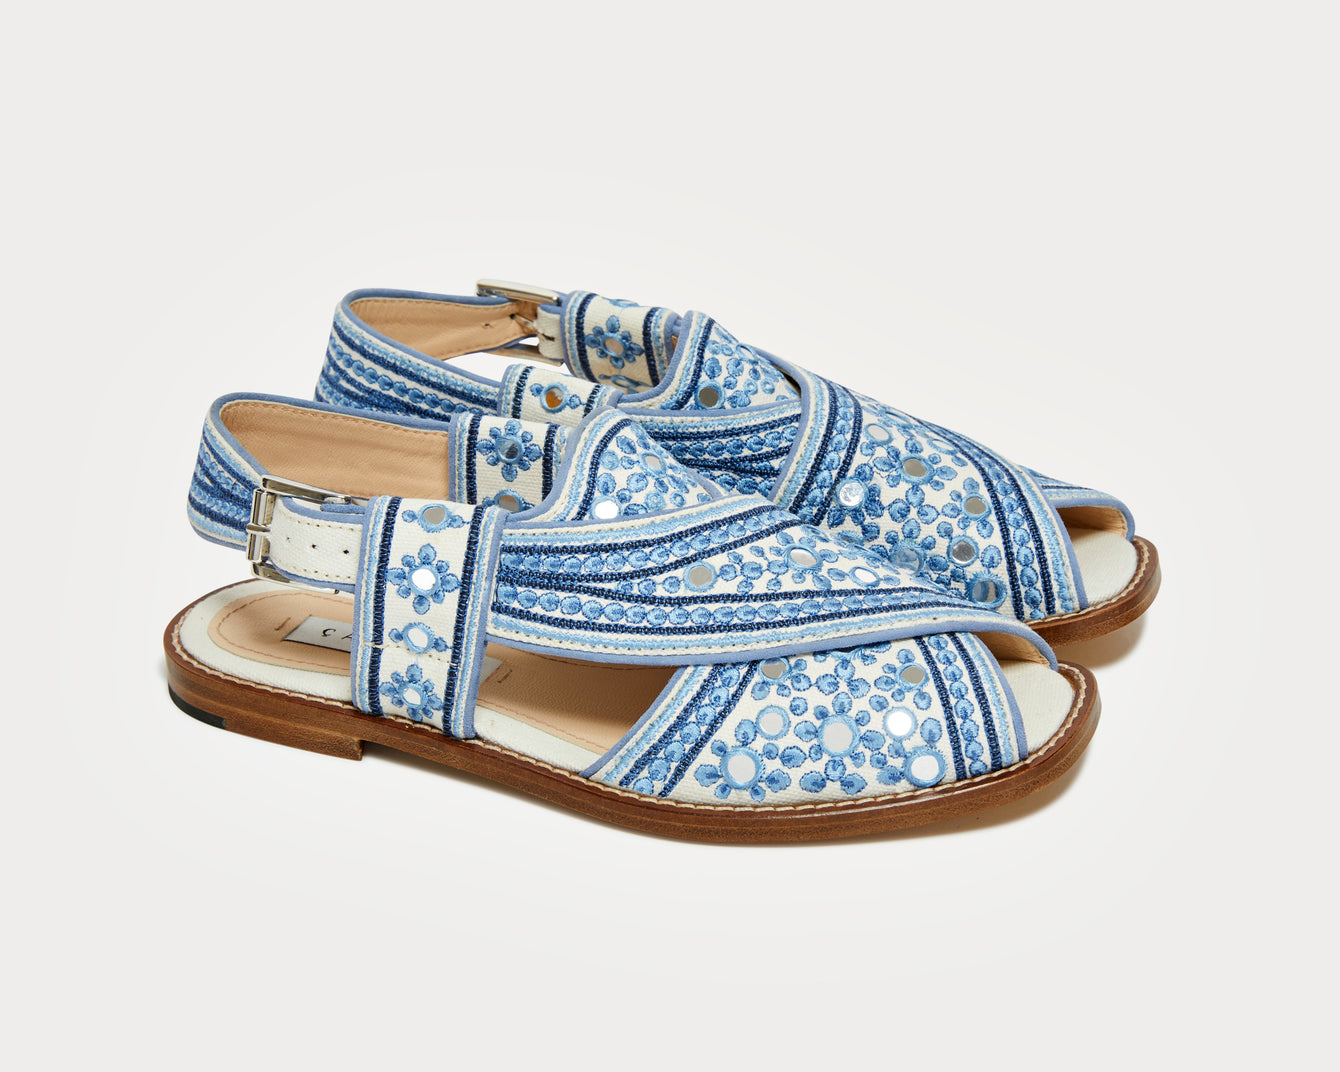 The Balochi – Blue/White